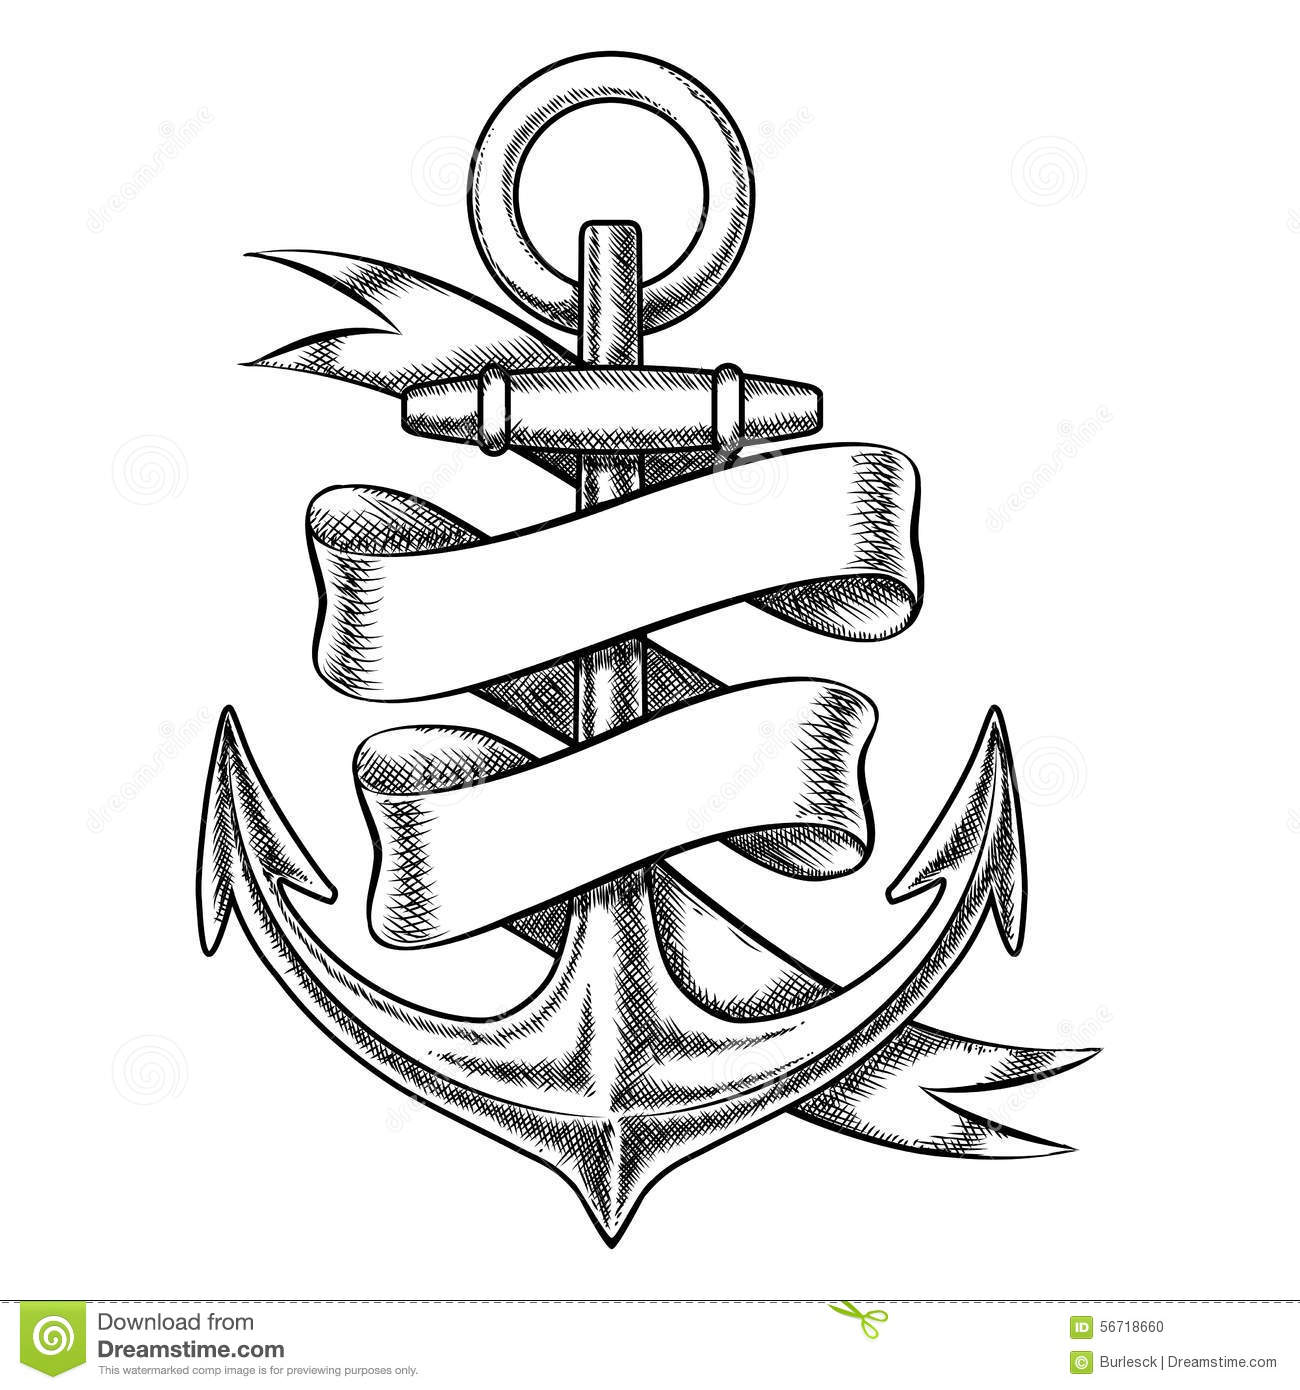 Iron Element Symbol Black And White Vector Hand Drawn Anch...